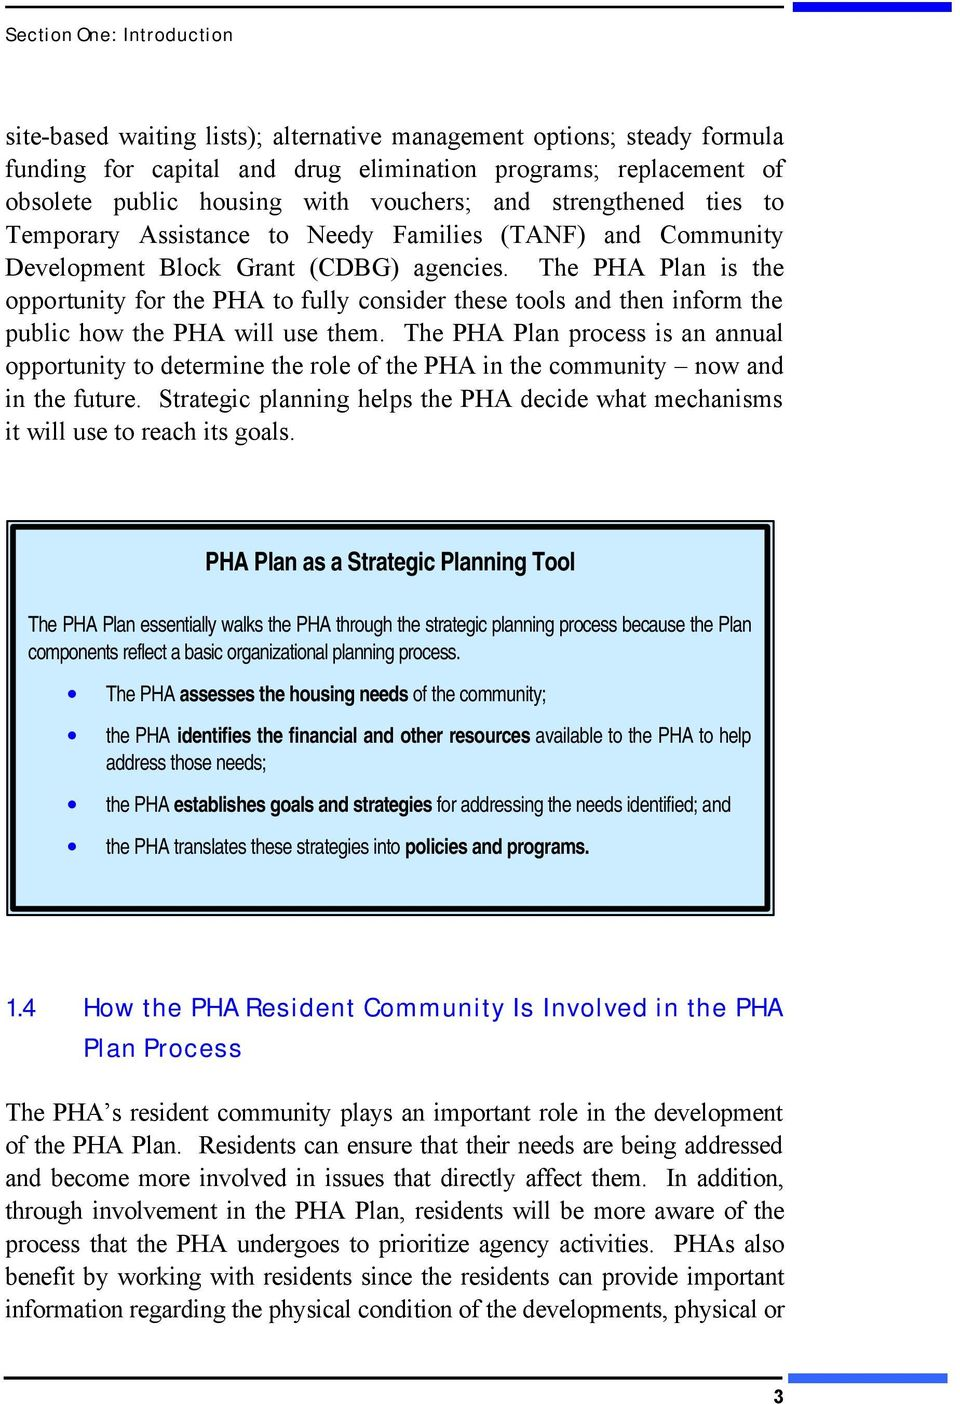 The PHA Plan is the opportunity for the PHA to fully consider these tools and then inform the public how the PHA will use them.